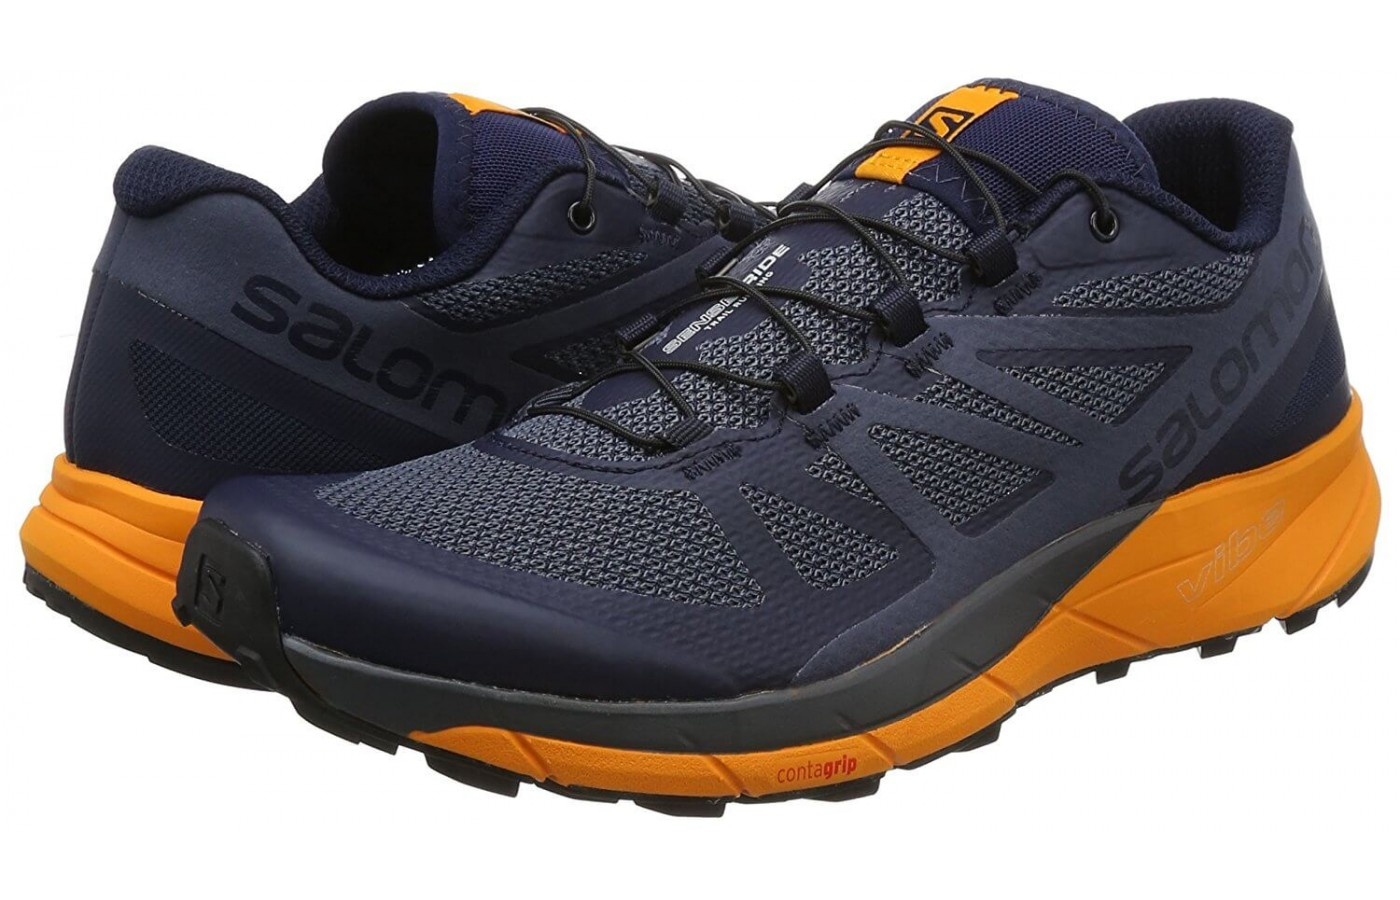 The Salomon Sense Ride has a breathable, water resistant upper.